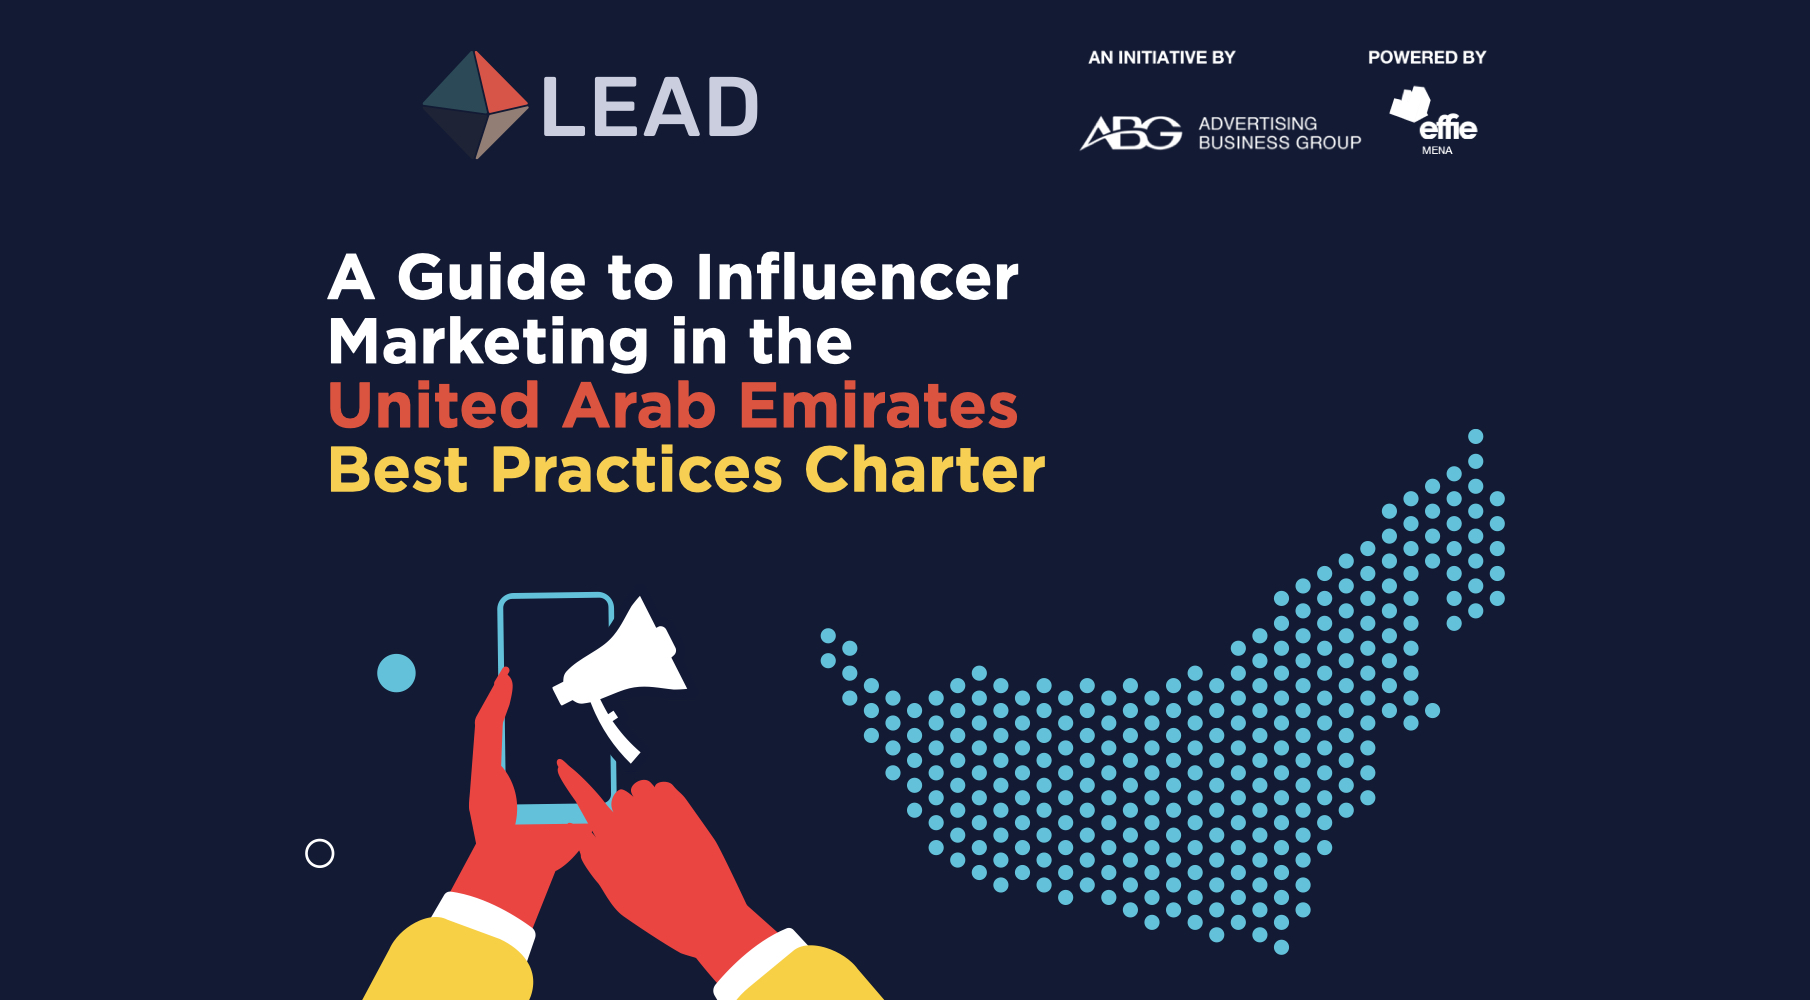 abg-launches-influencer-marketing-transparency-charter